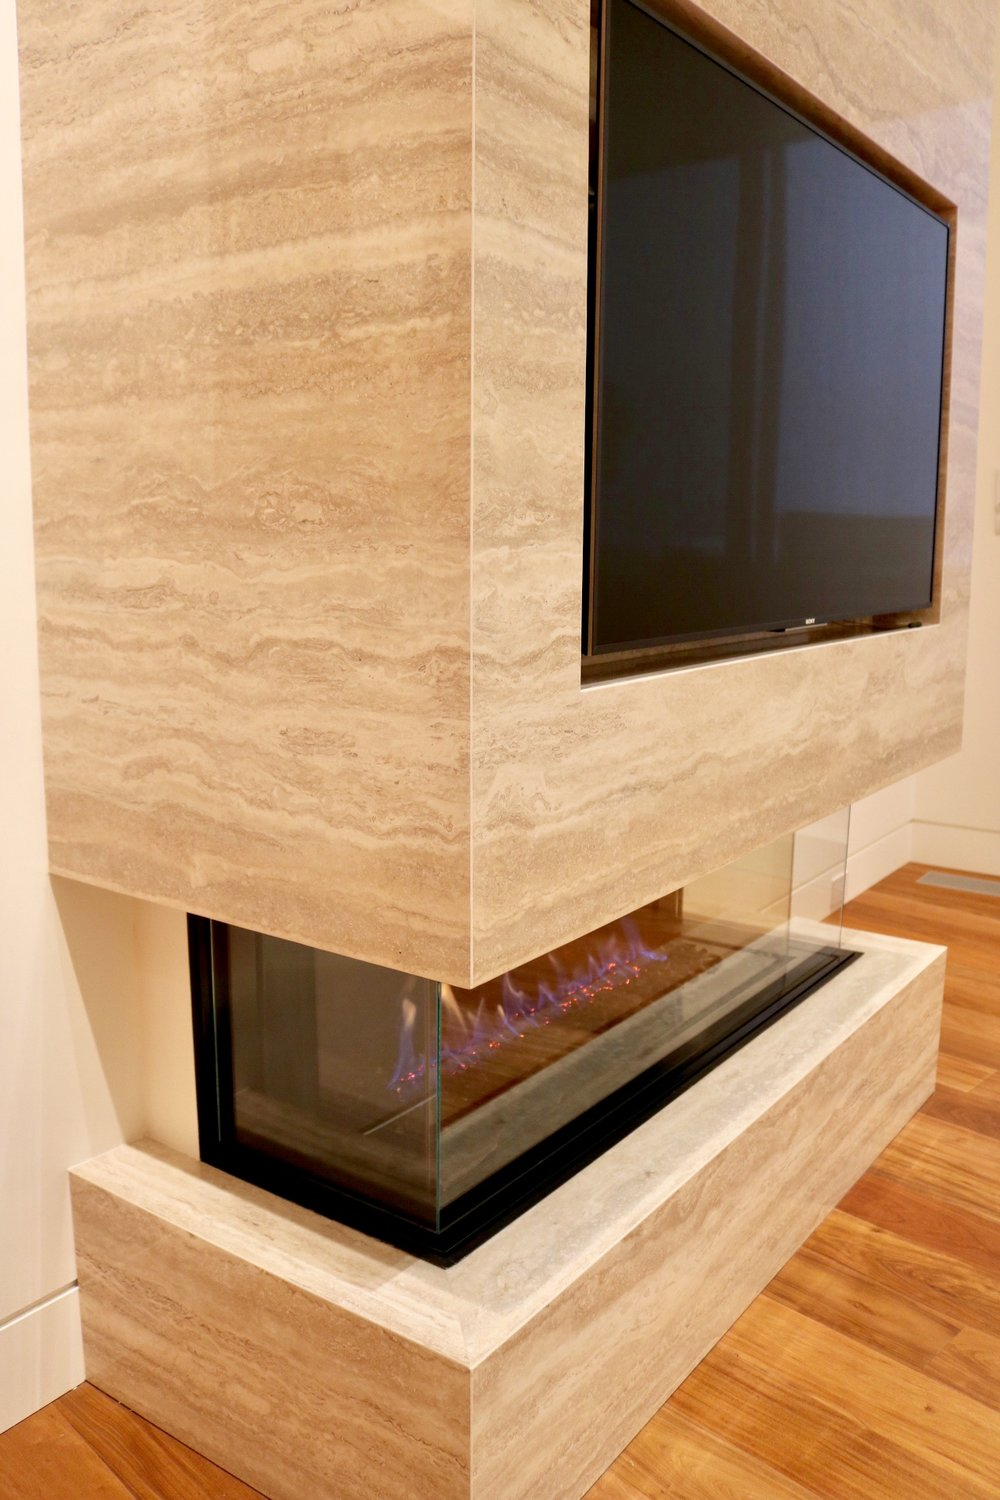 Metroworks Group Whistler Fireplace #2 39.JPG